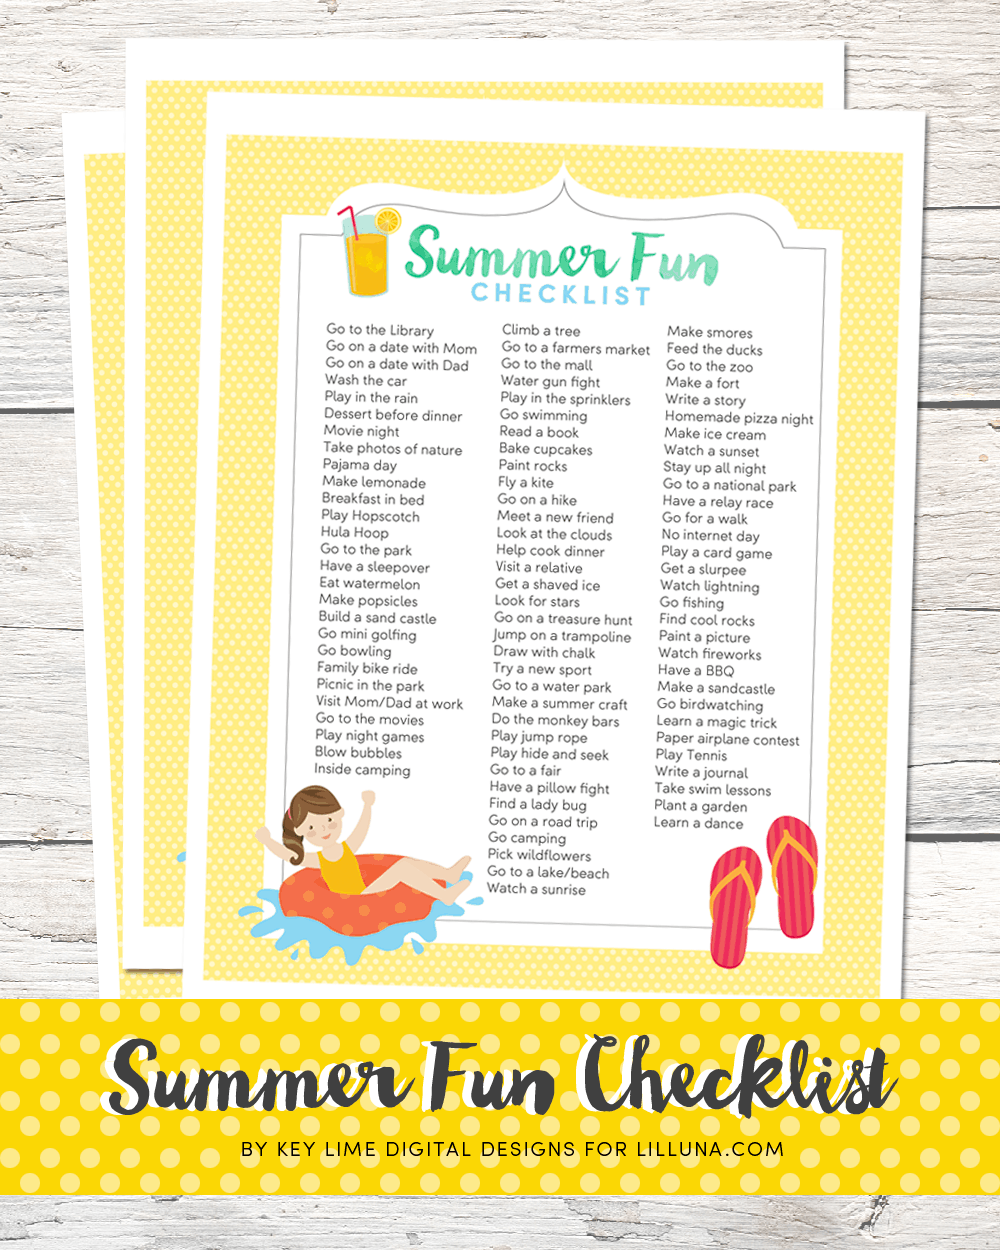 Summer Fun Checklist - FREE printable with lots of fun and creative activities to bust your kids' summer boredom!